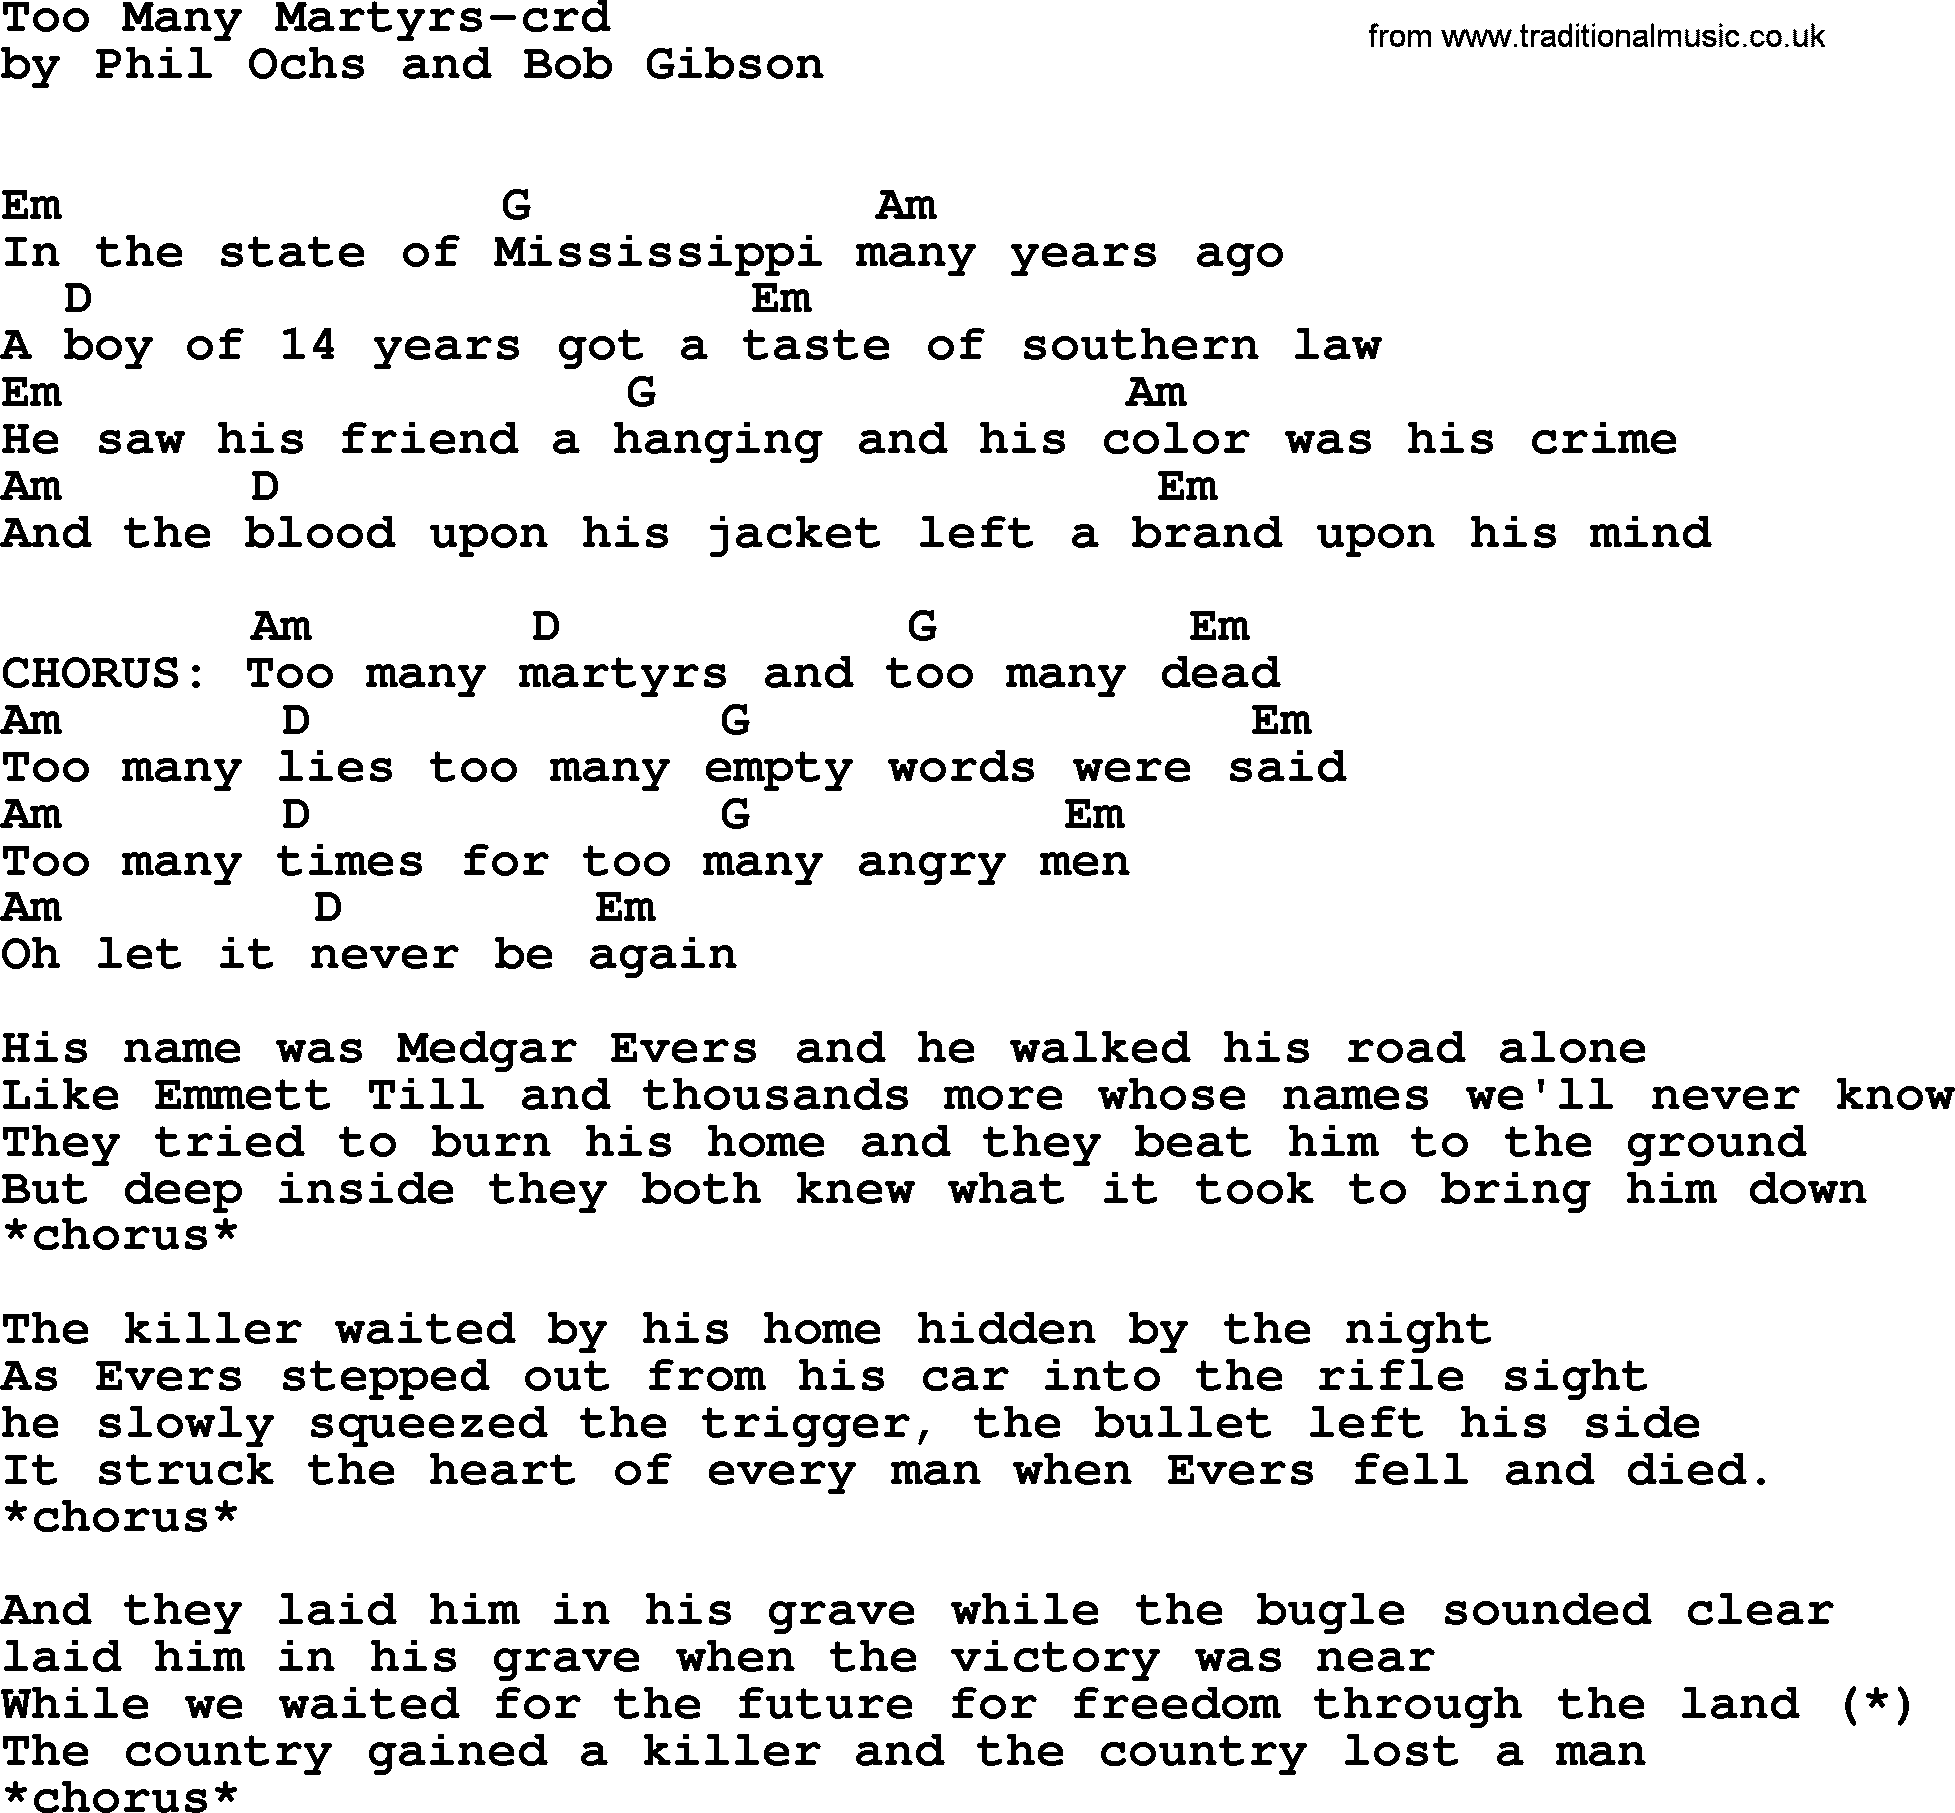 Phil Ochs song - Too Many Martyrs, lyrics and chords